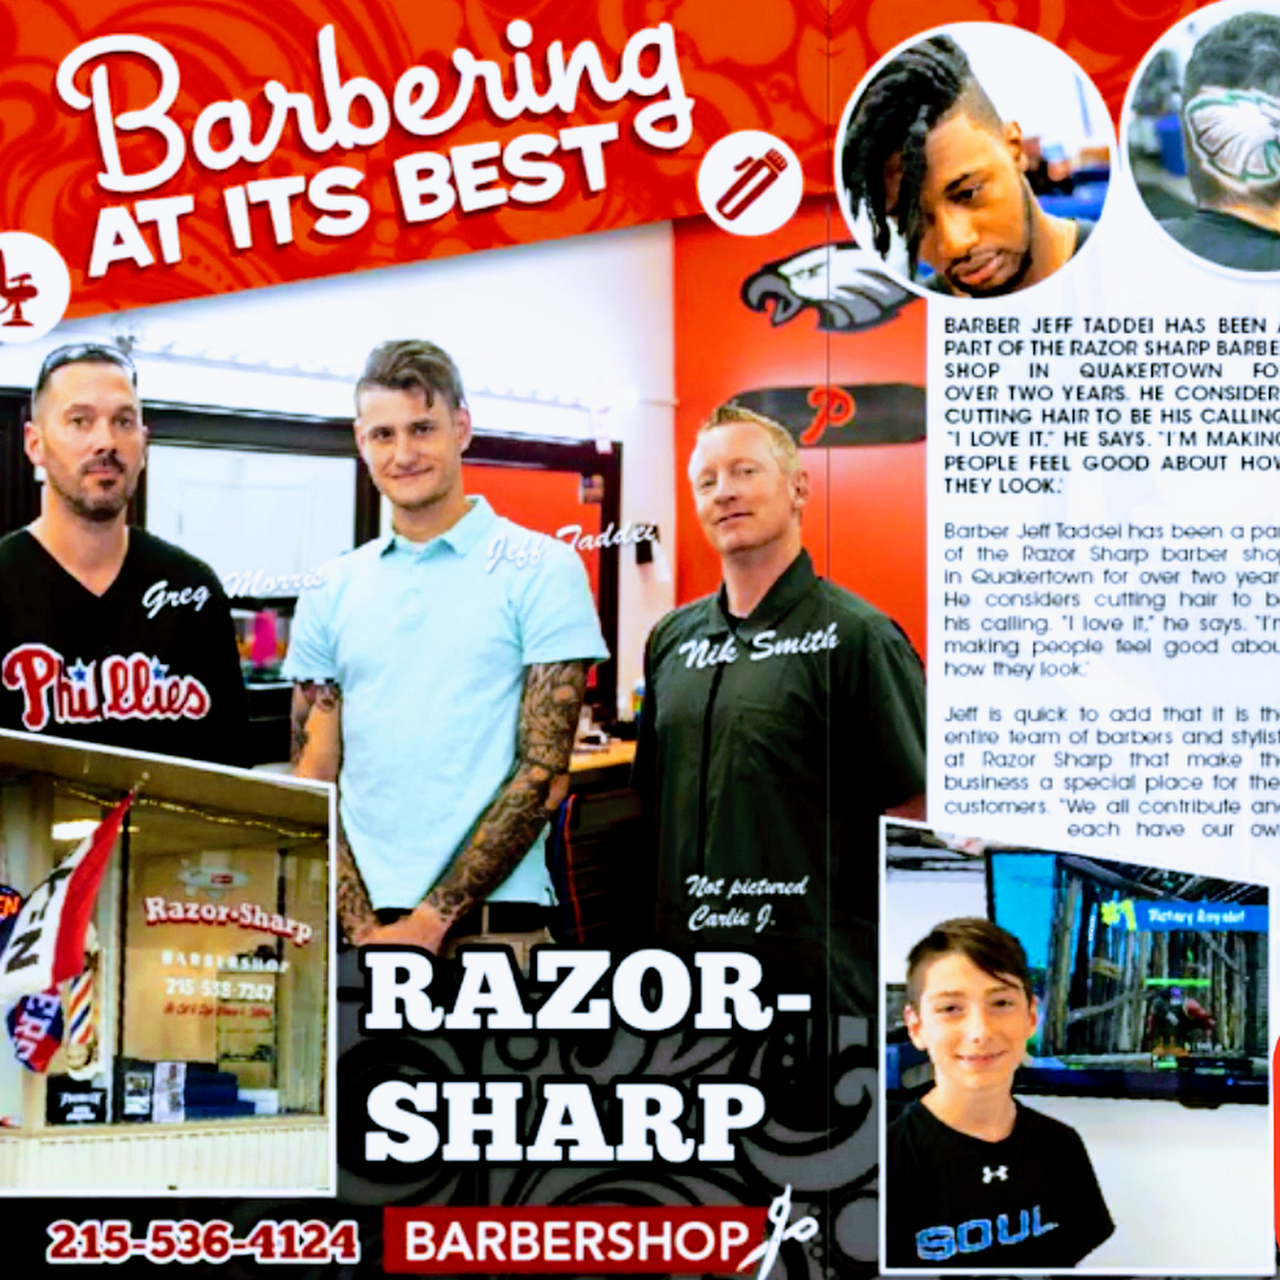 Razor Sharp Barbershop Barber Shop In Quakertown